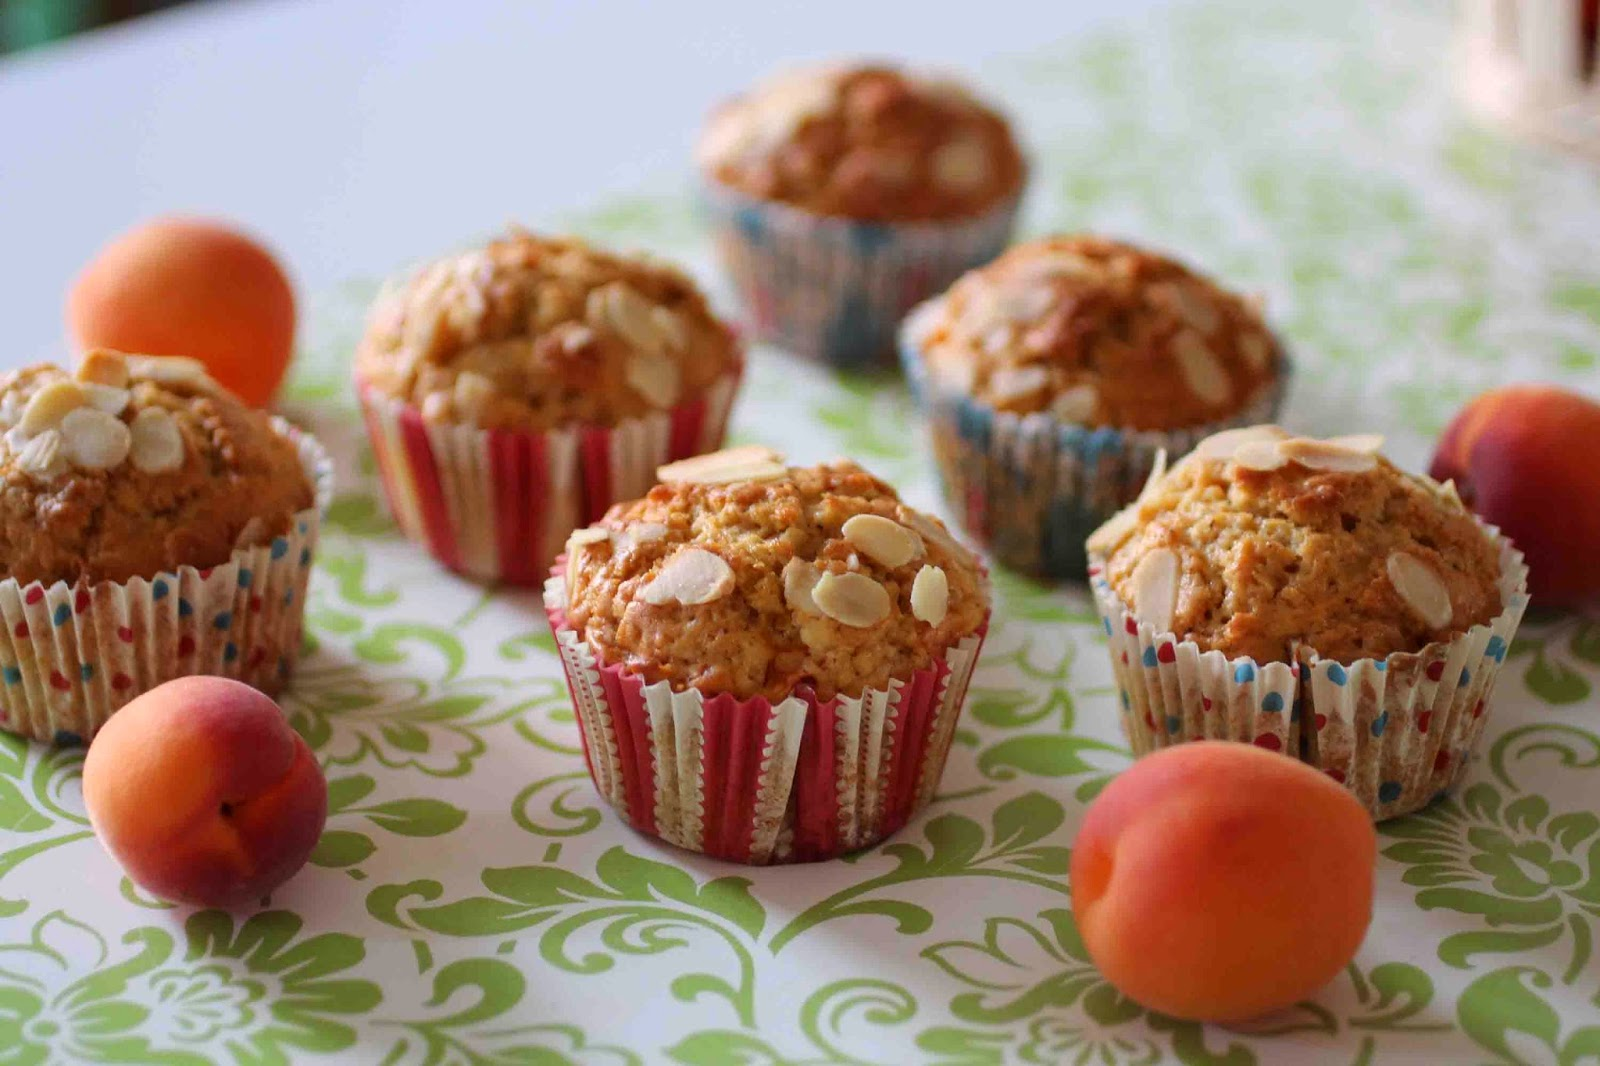 http://camilleenchocolat.blogspot.fr/2014/09/muffins-aux-abricots.html